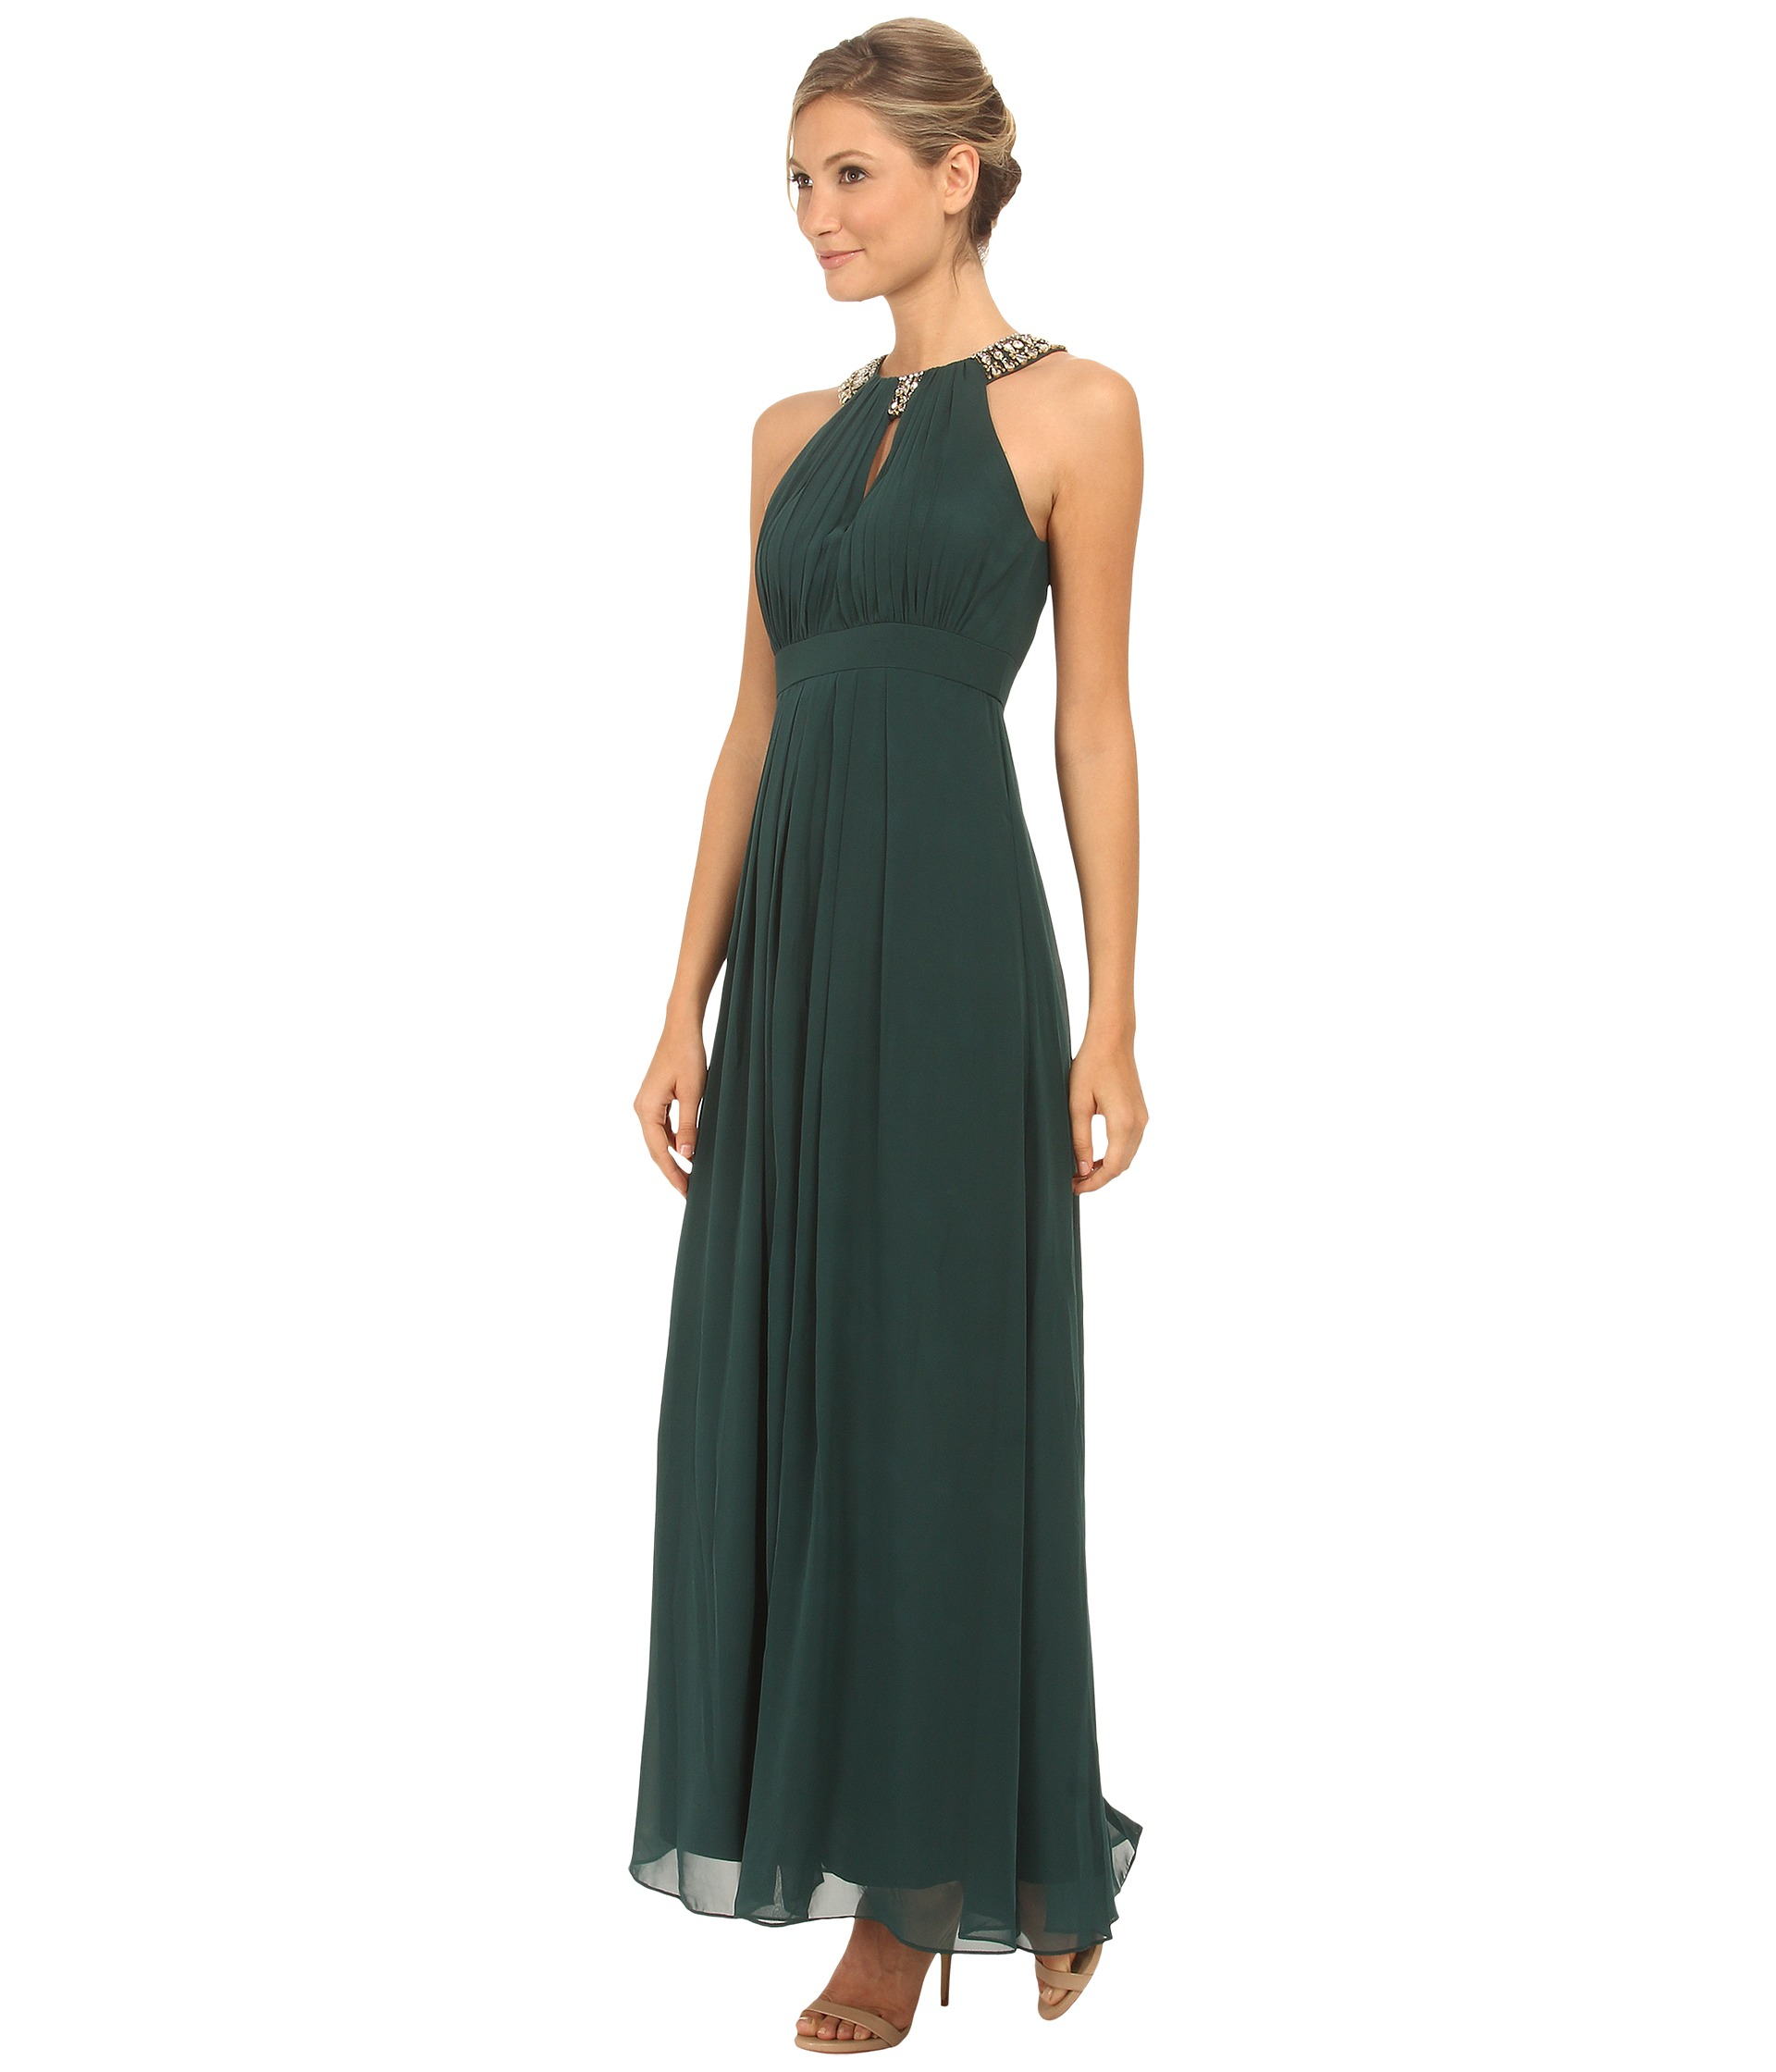 Lyst - Eliza J Beaded Neck Band Chiffon Dress in Green